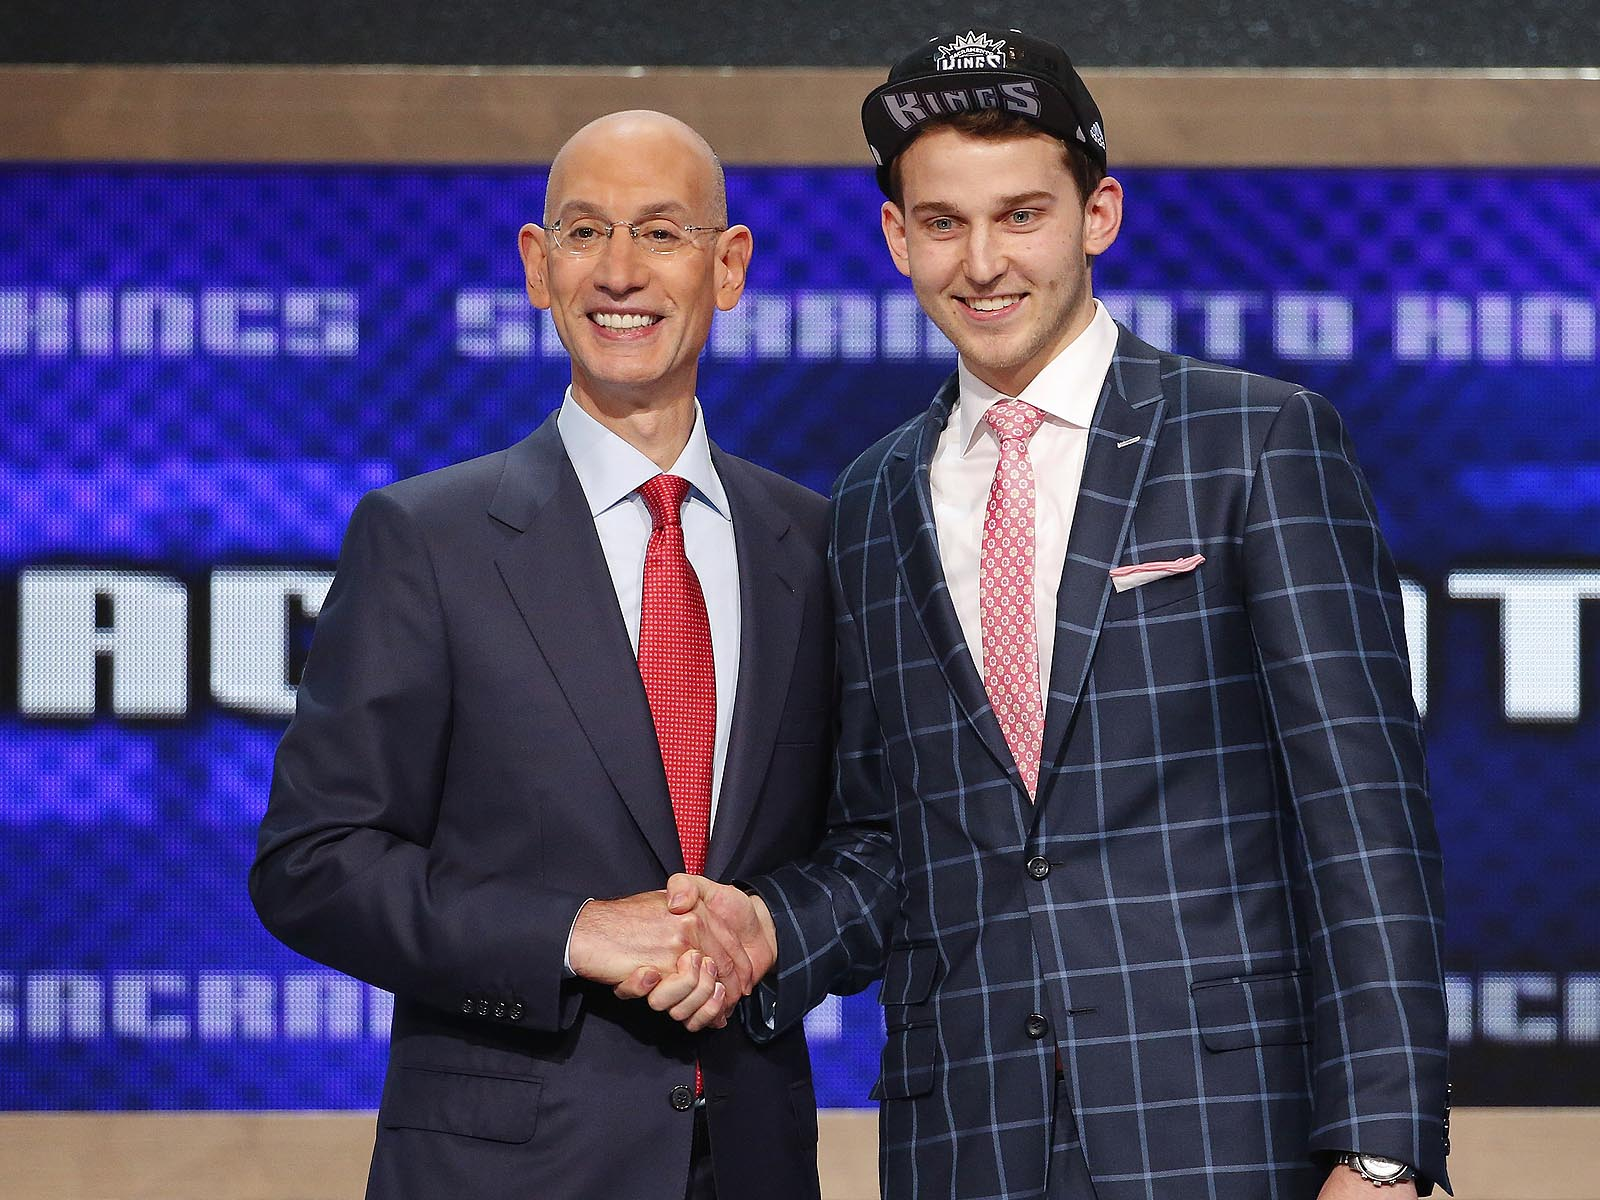 The ex-Blue guard, Stauskas shows a little European flair with this appropriately colored, London-inspired windowpane suit.